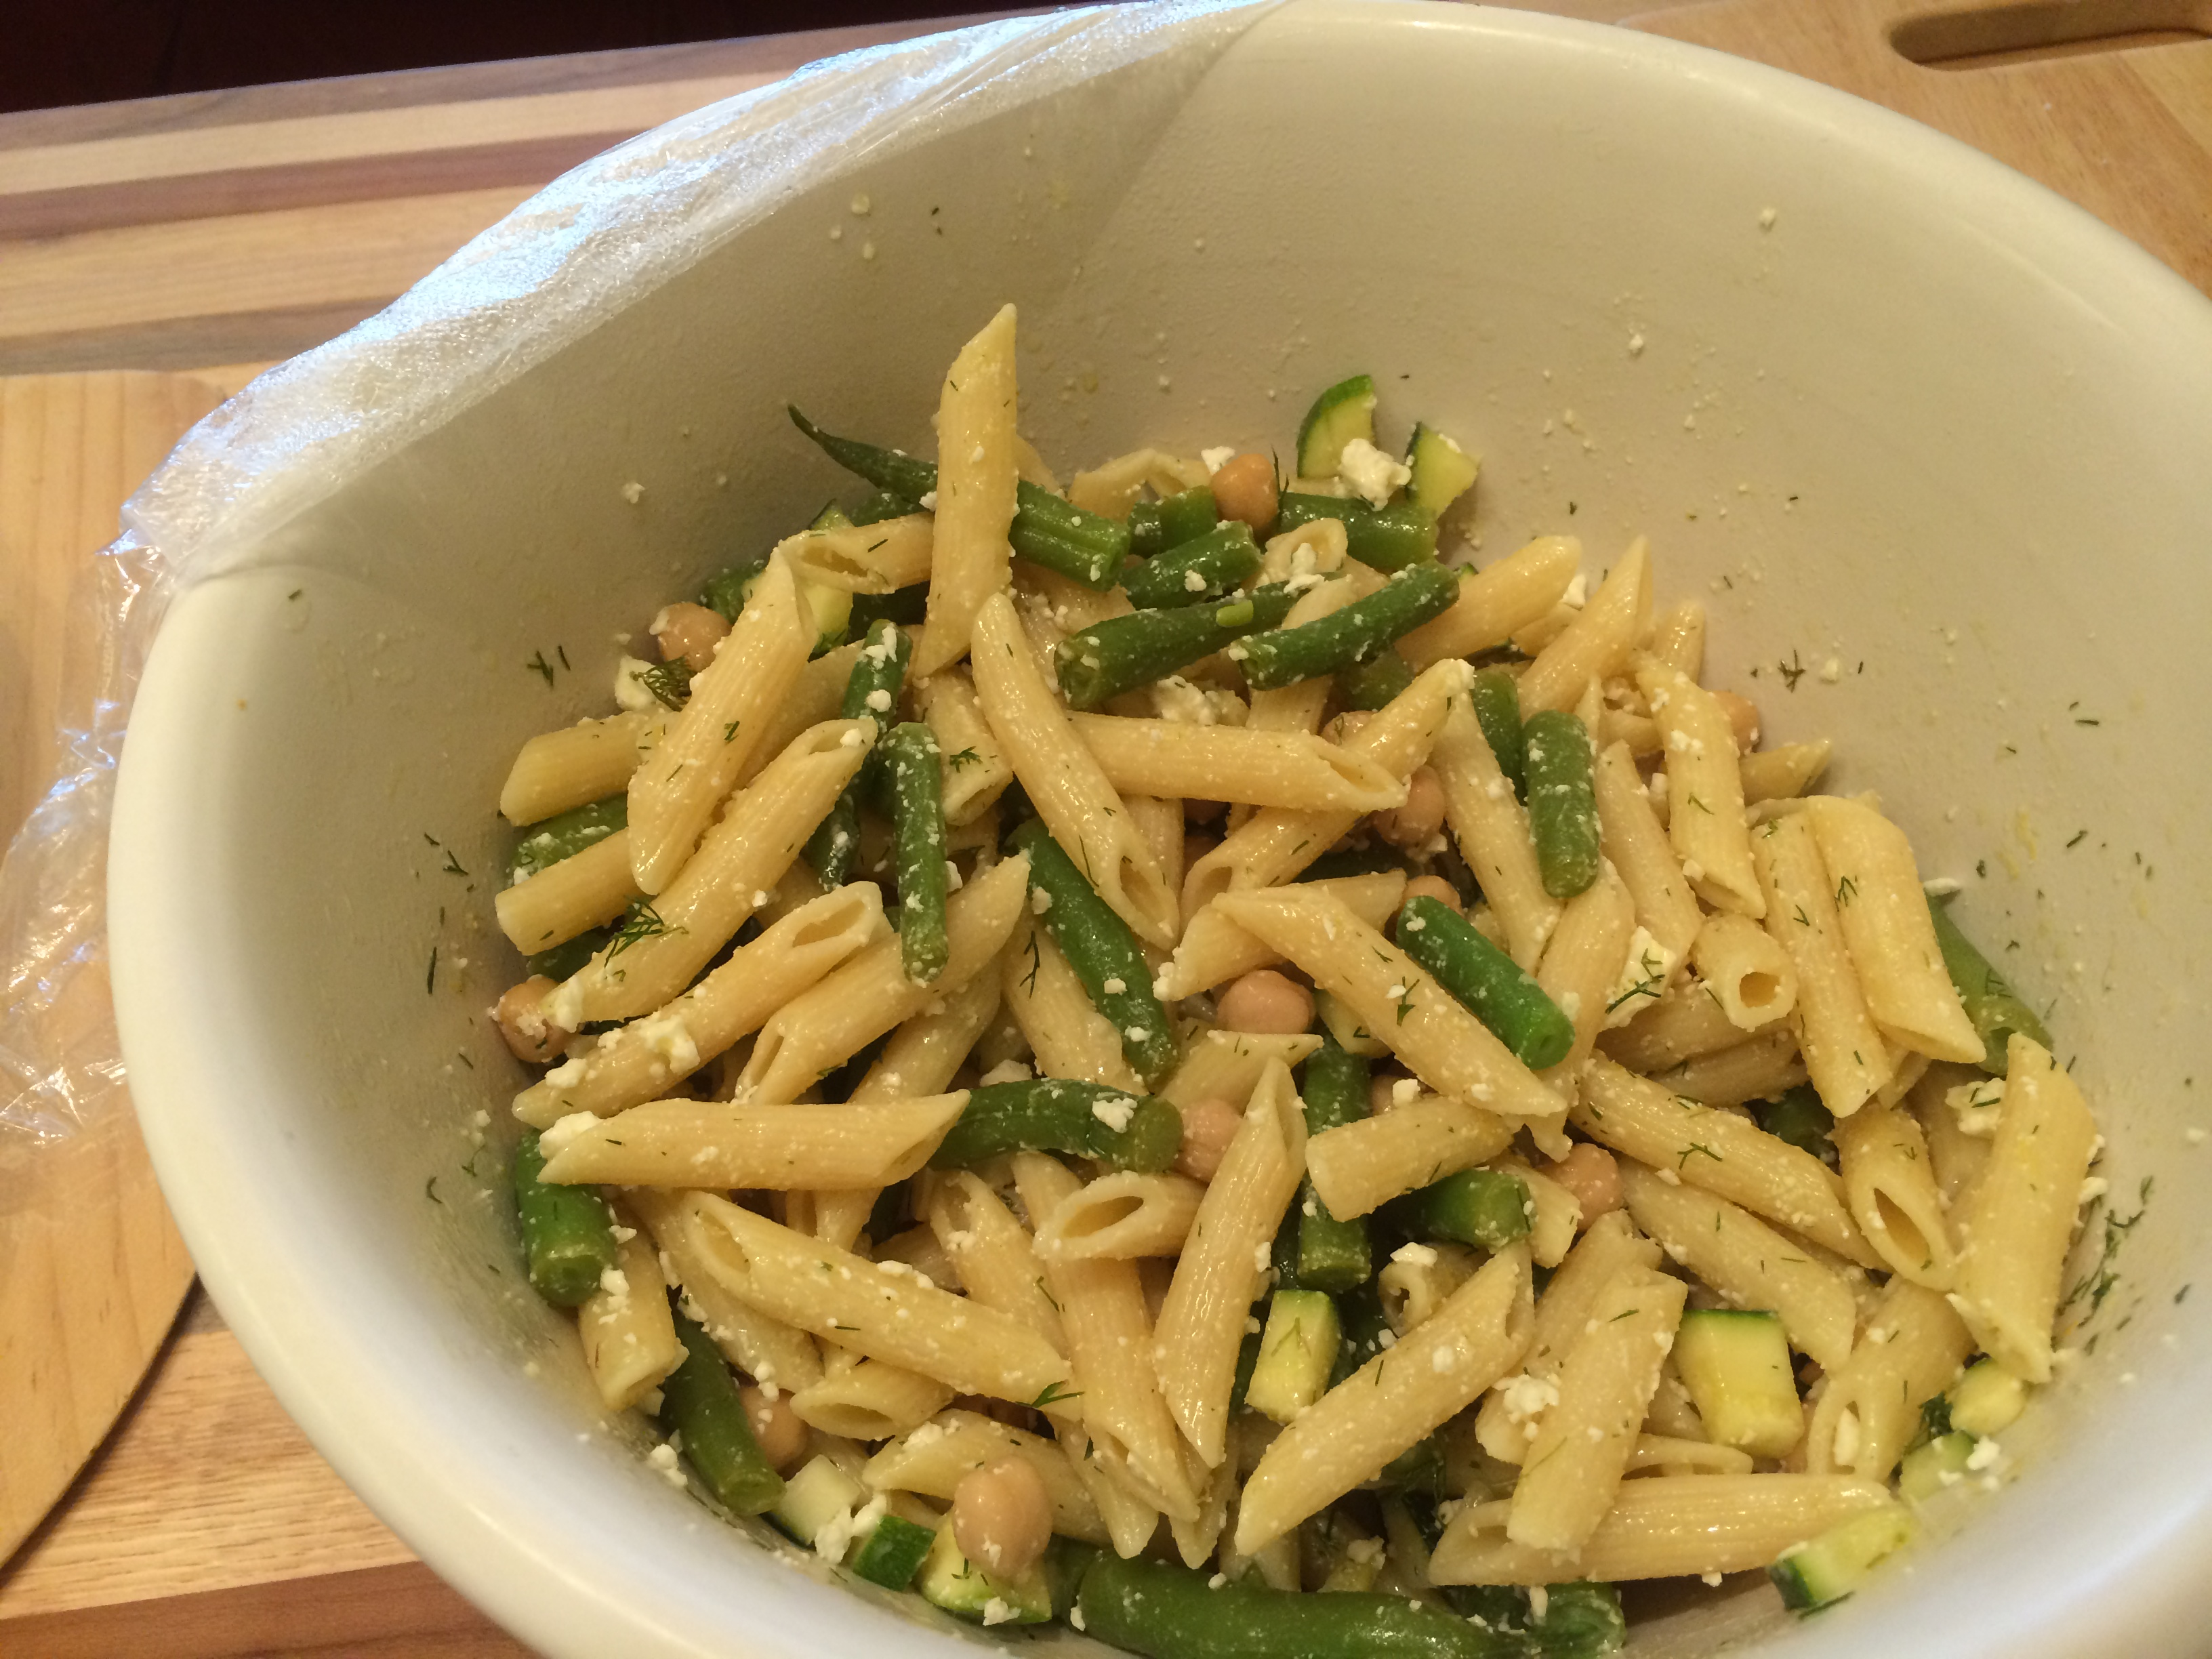 Zucchini pasta salad with green beans, feta, garbanzo beans and dill